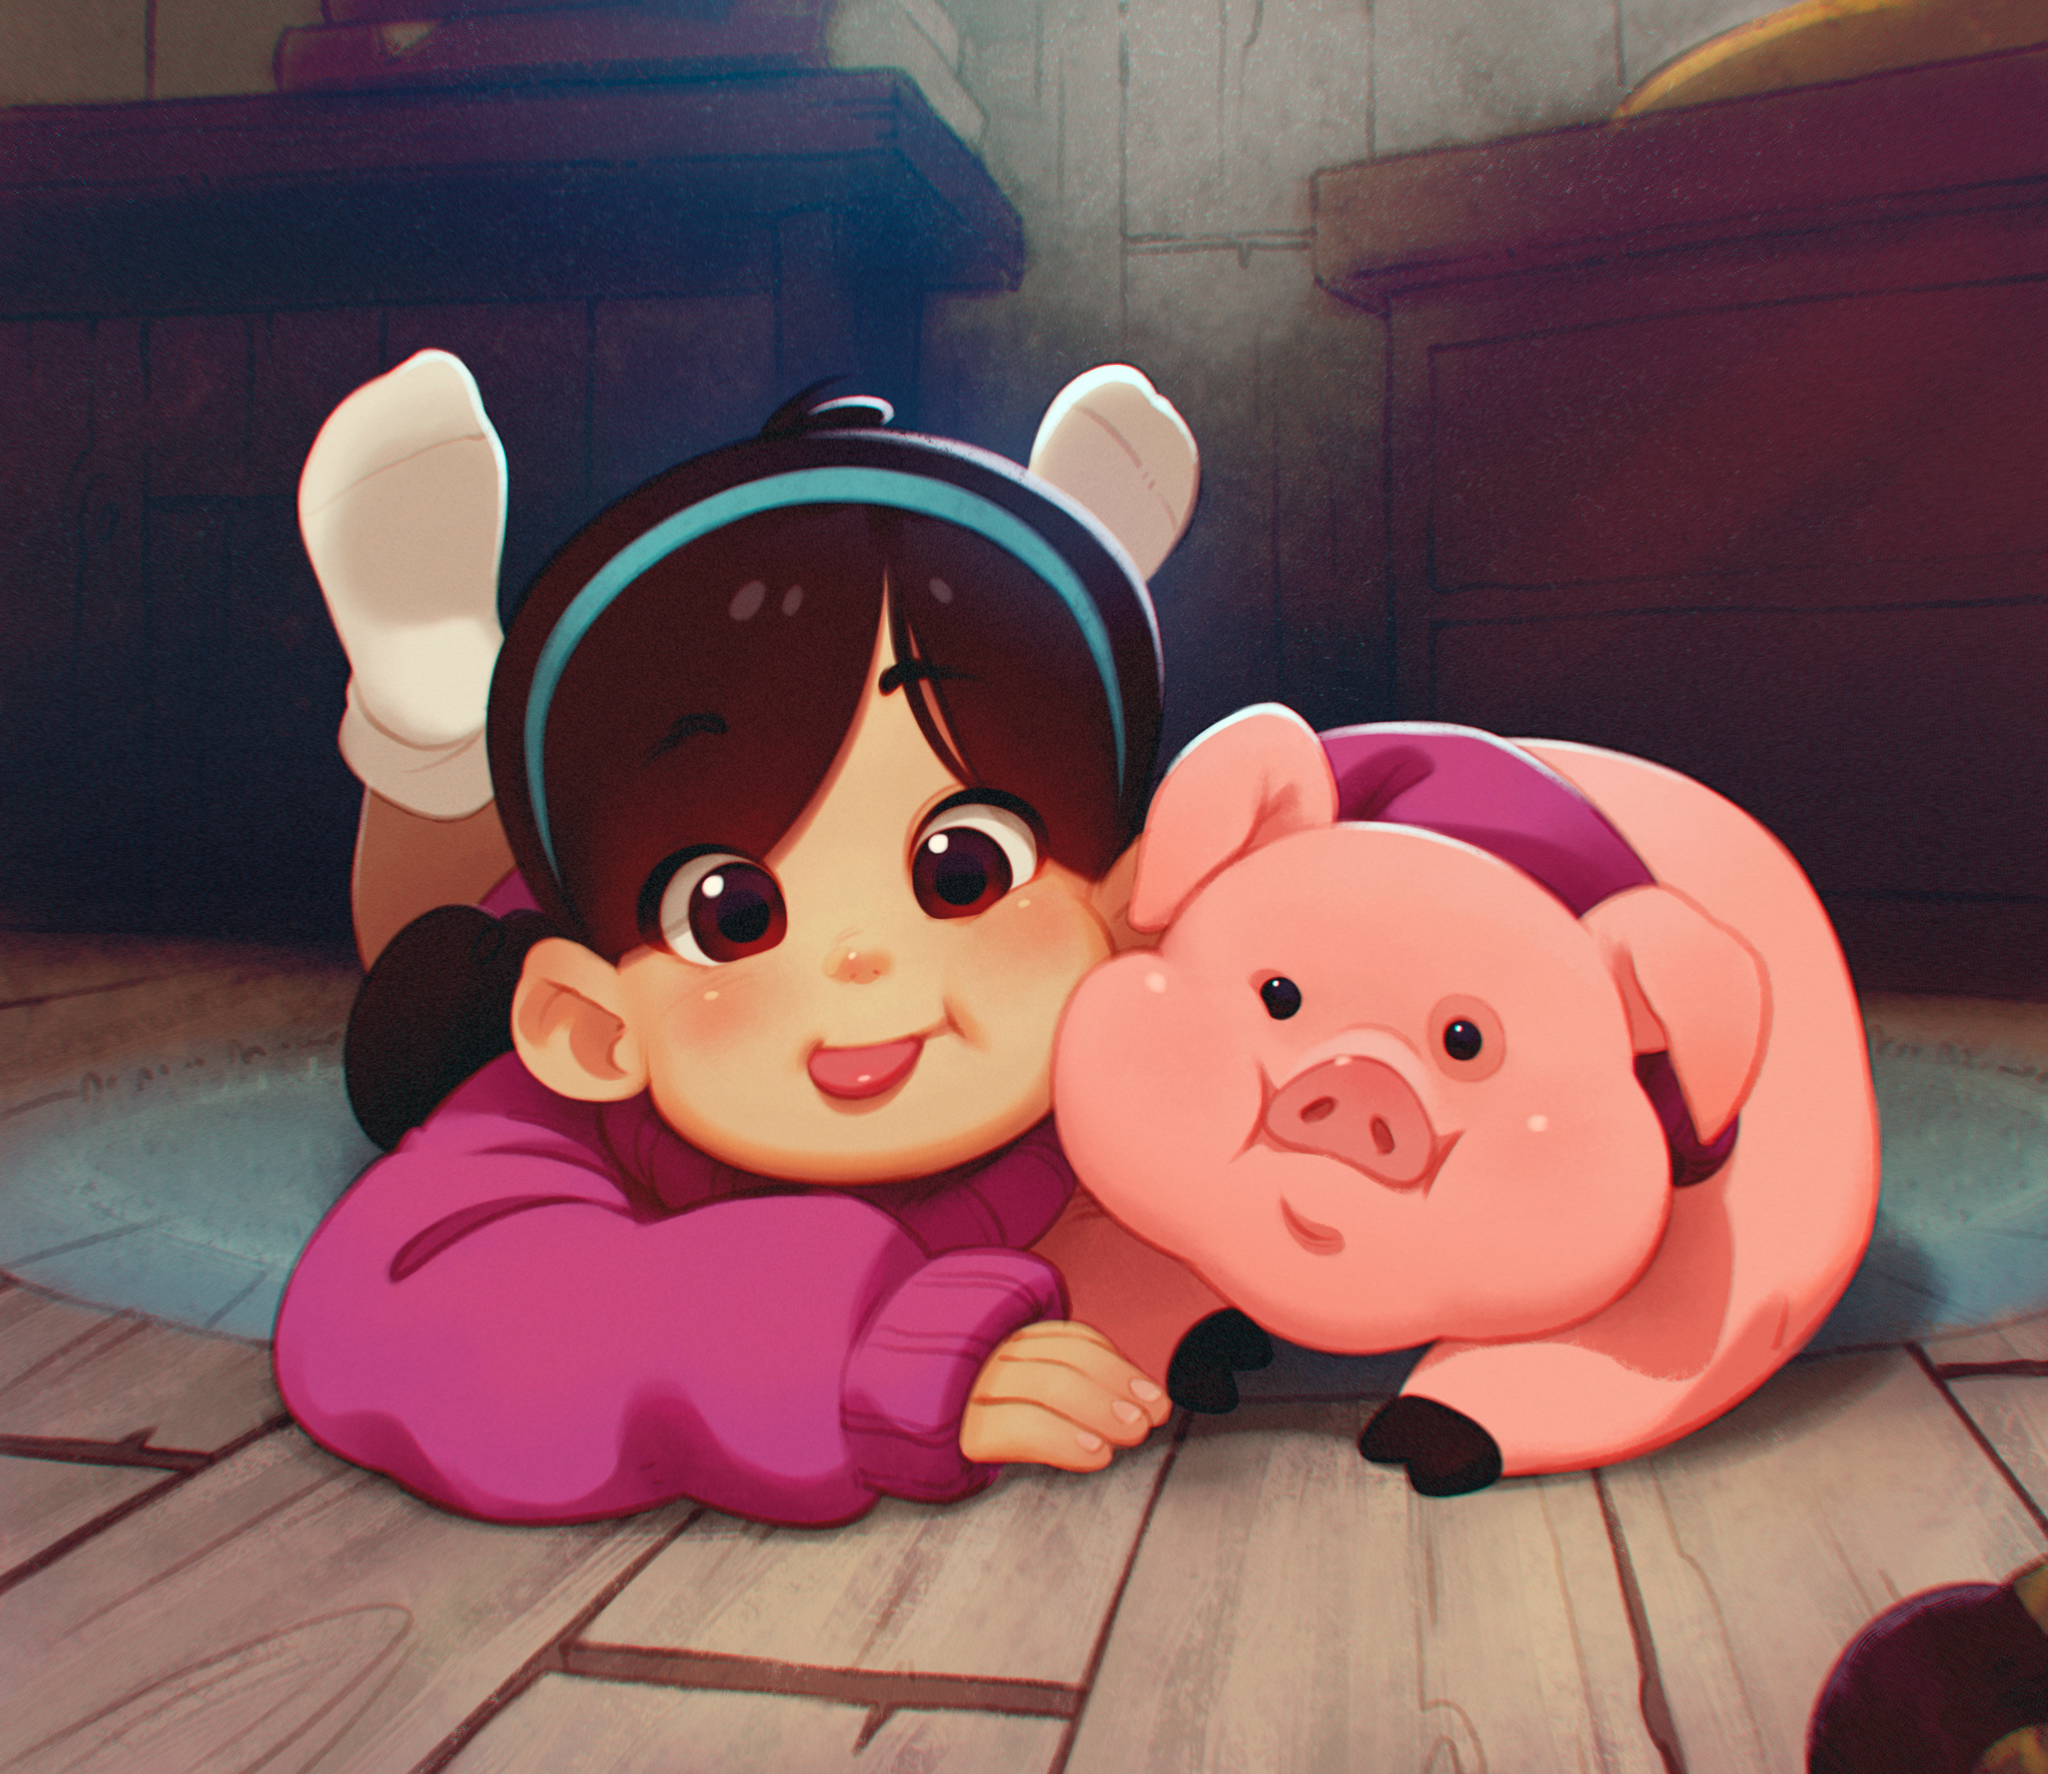 Mabel and Waddles by ALKEMANUBIS